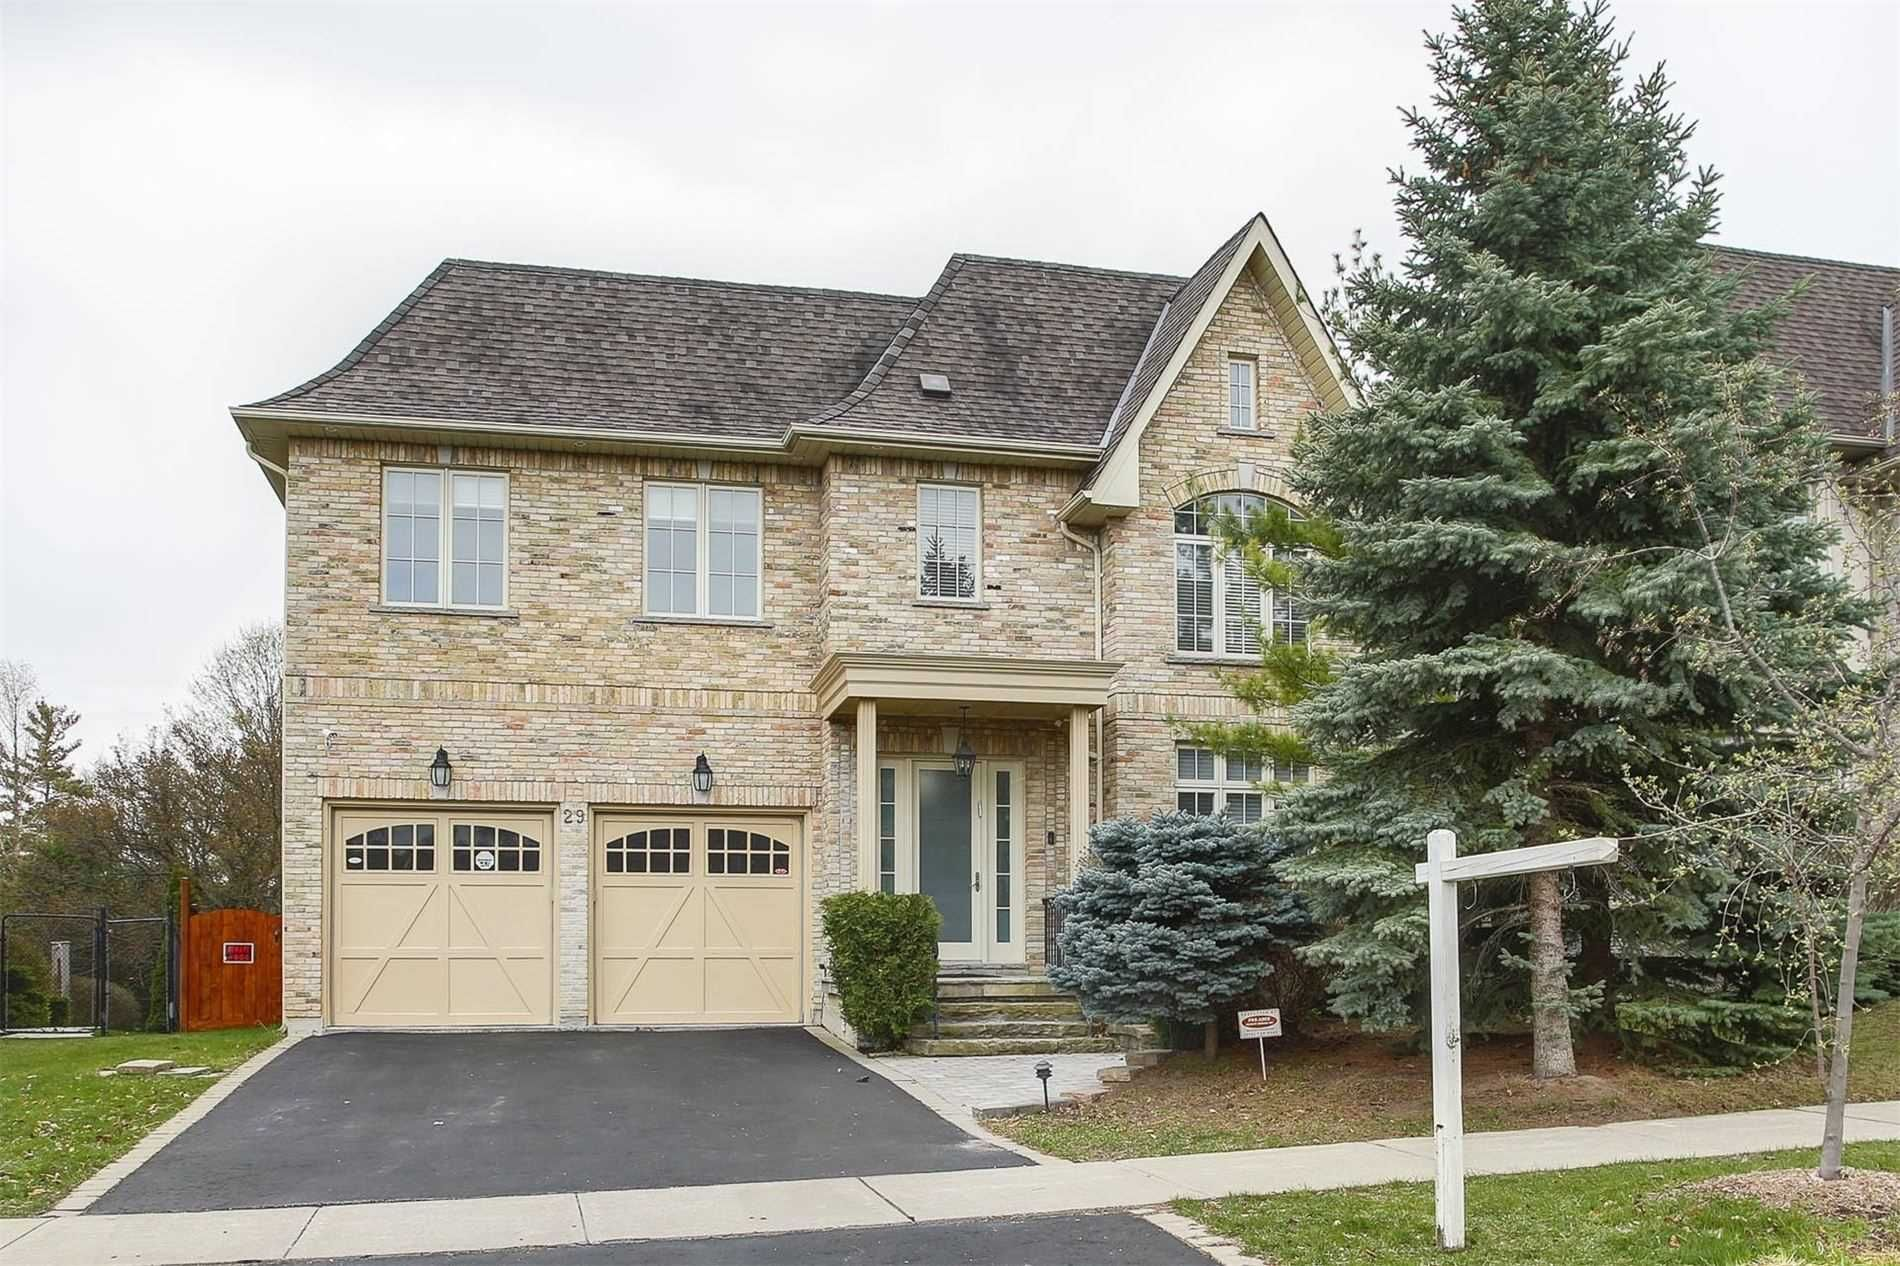 Main Photo: 29 Sanibel Cres in Vaughan: Uplands Freehold for sale : MLS®# N5211625